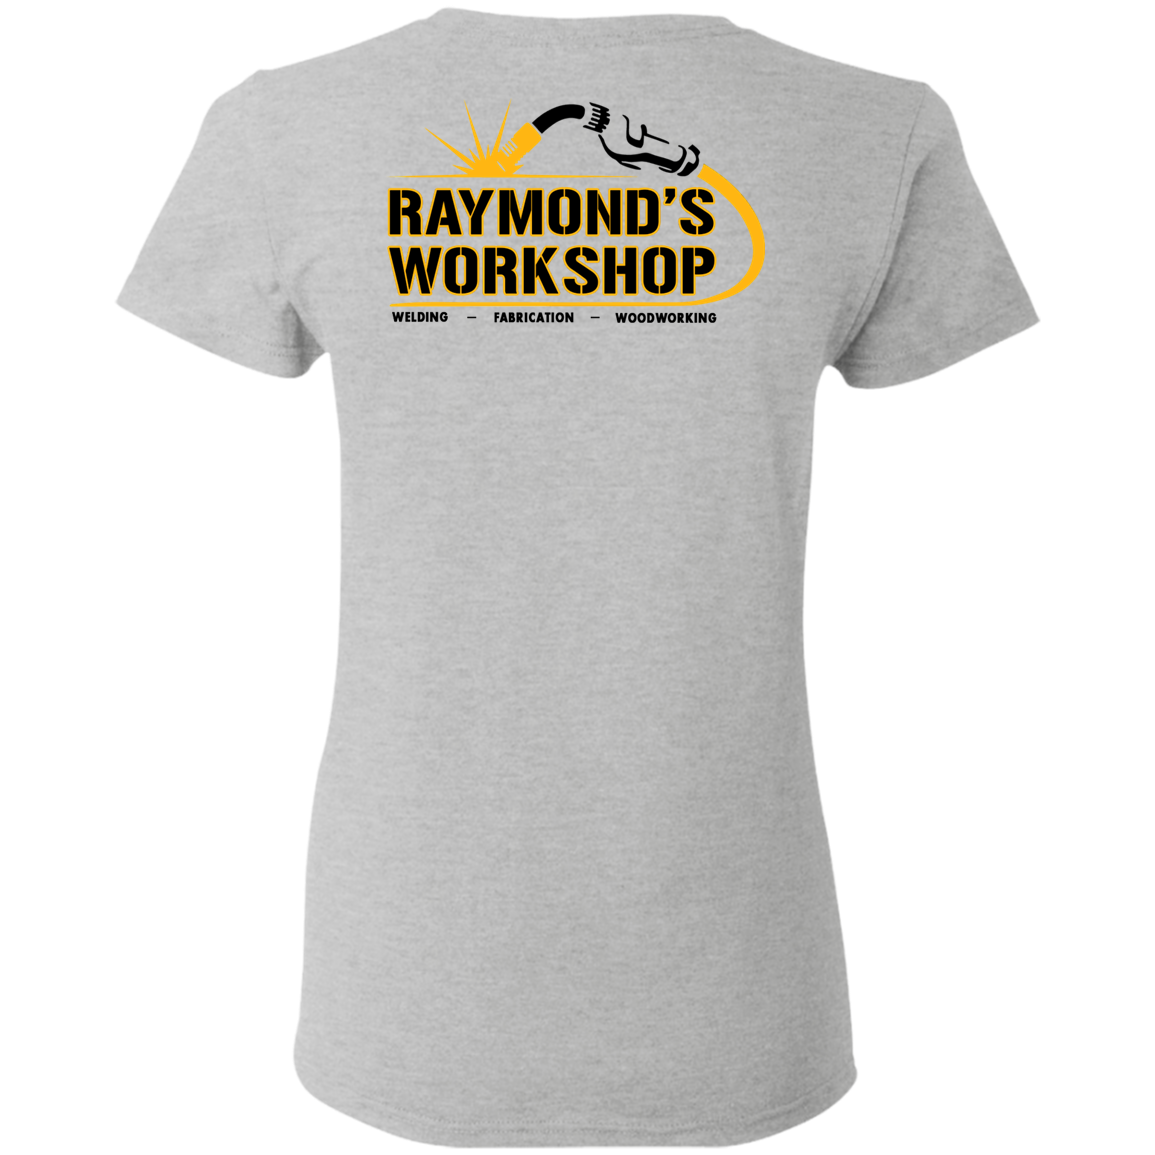 Raymond's Workshop Ladies' 5.3 oz. T-Shirt